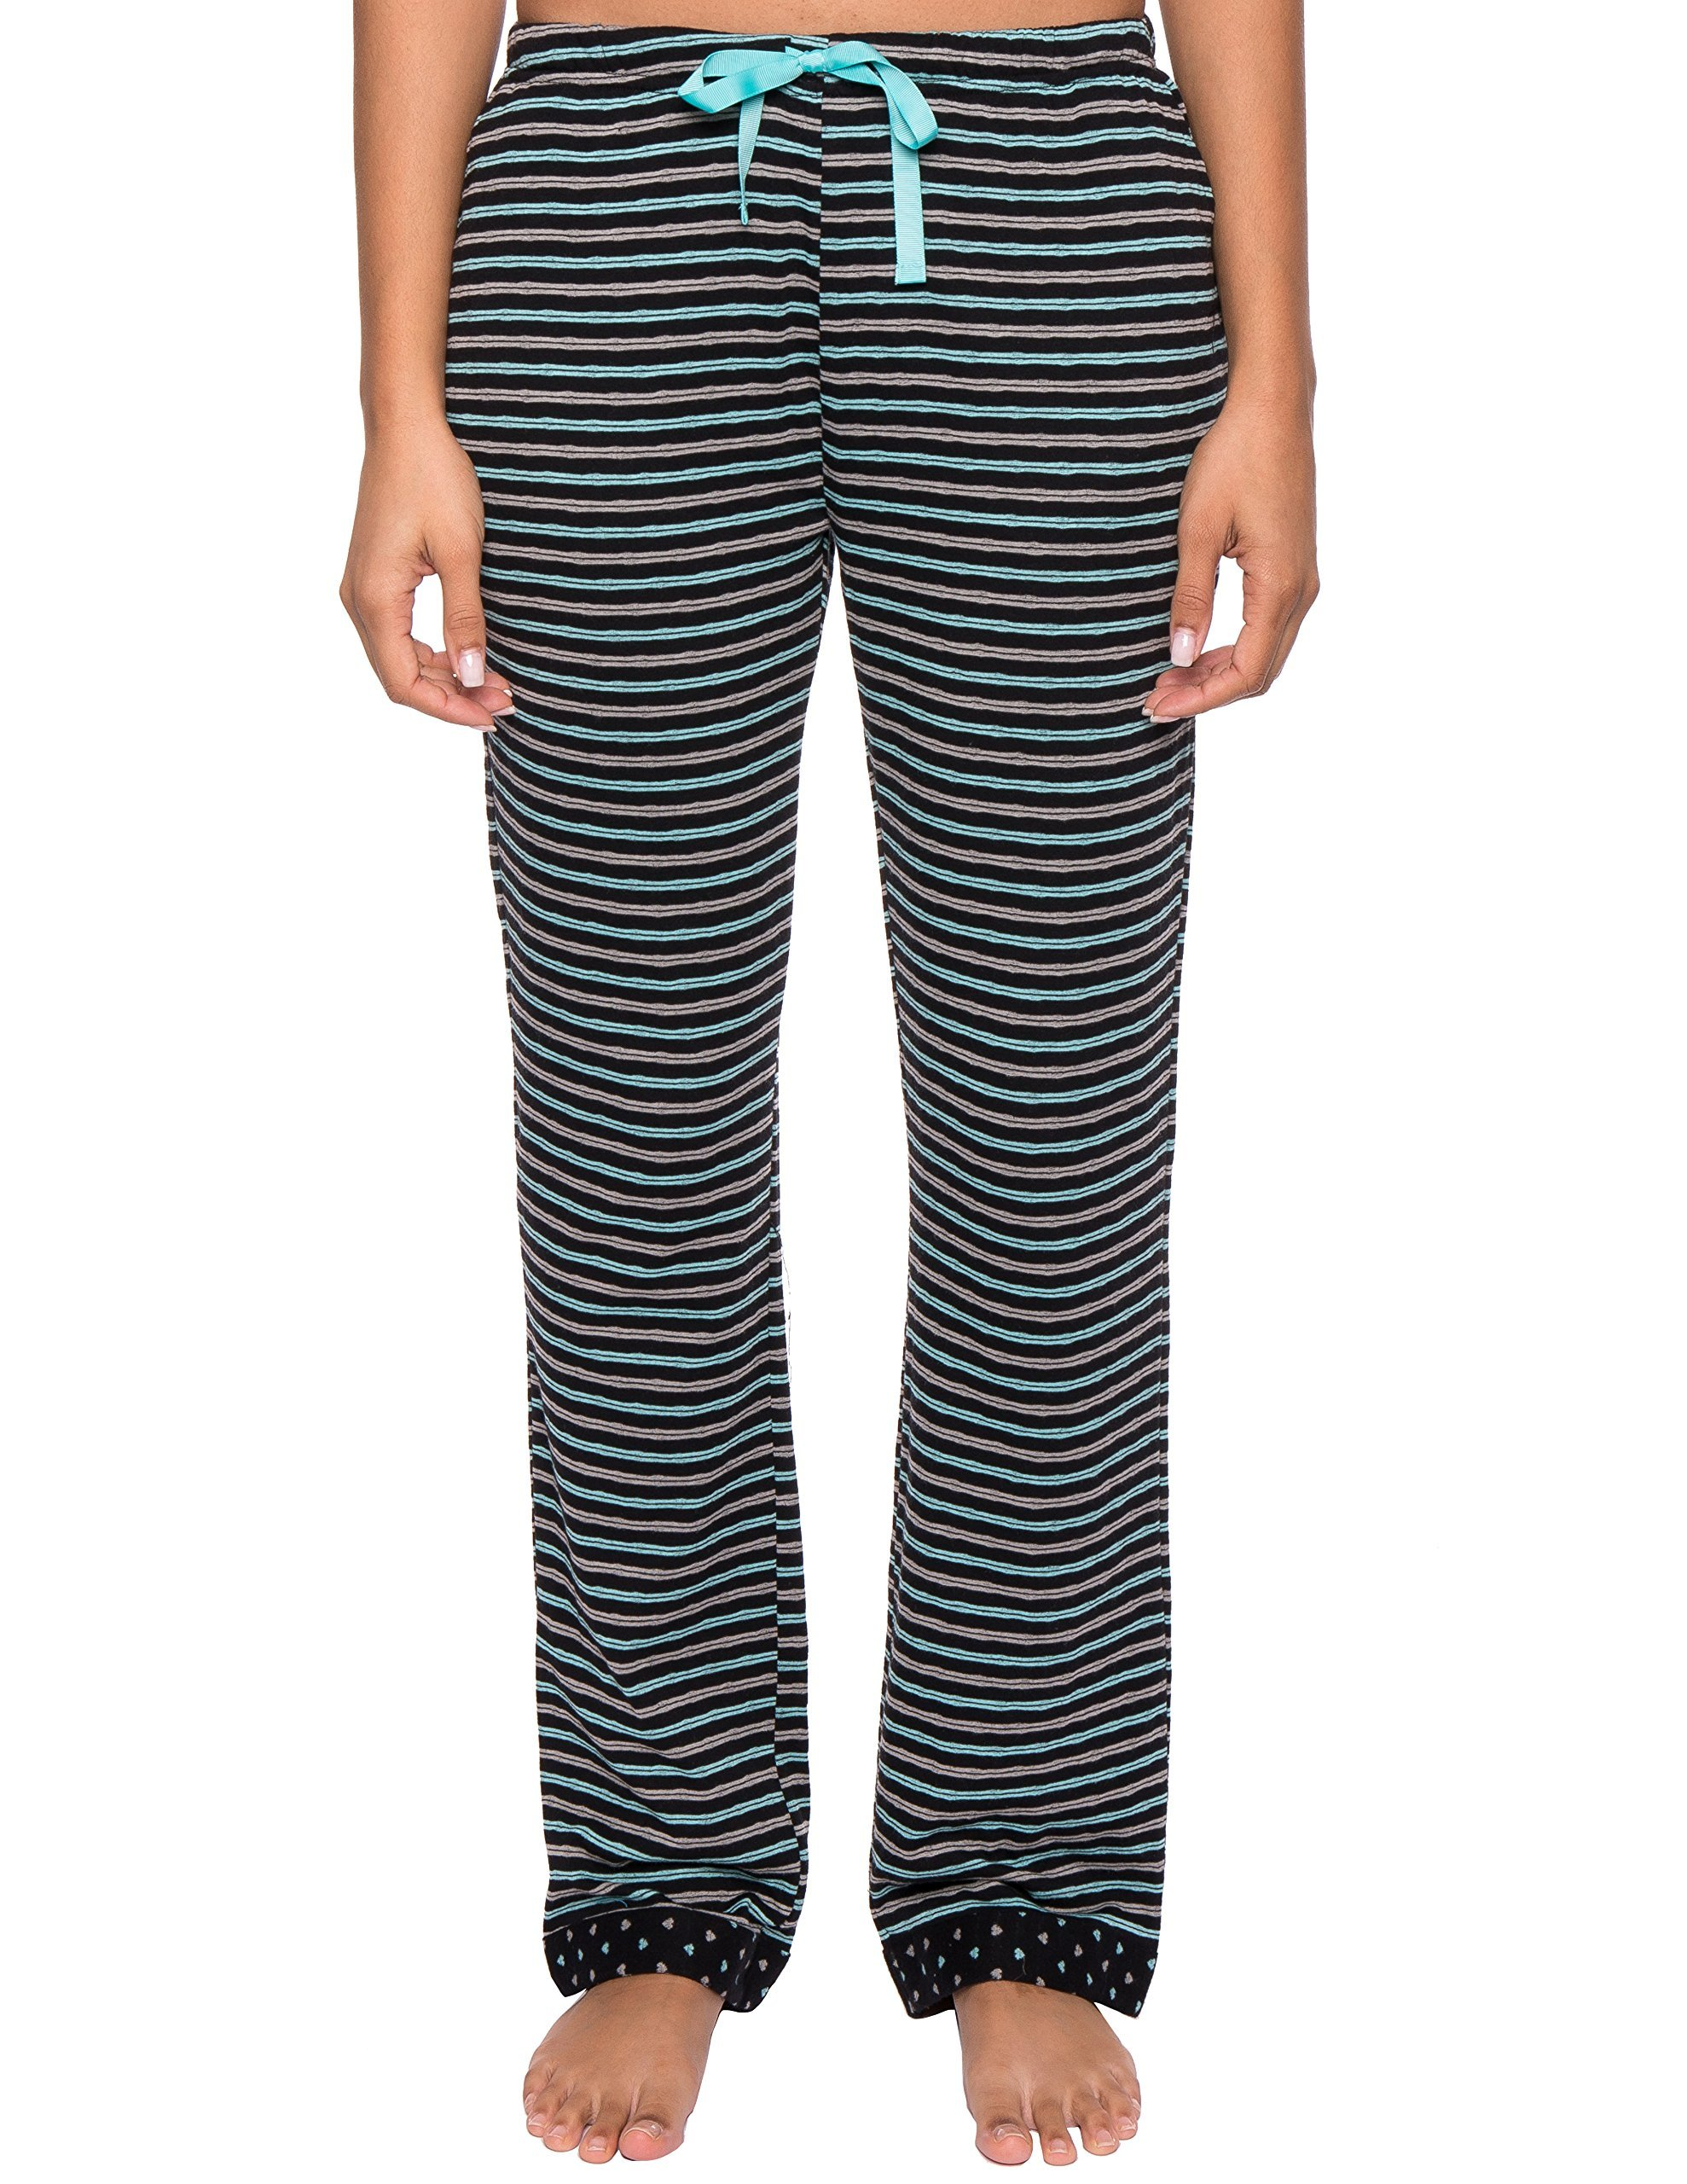 a4cf245cefd Noble Mount Womens Double Layer Knit Jersey Lounge Pants product image